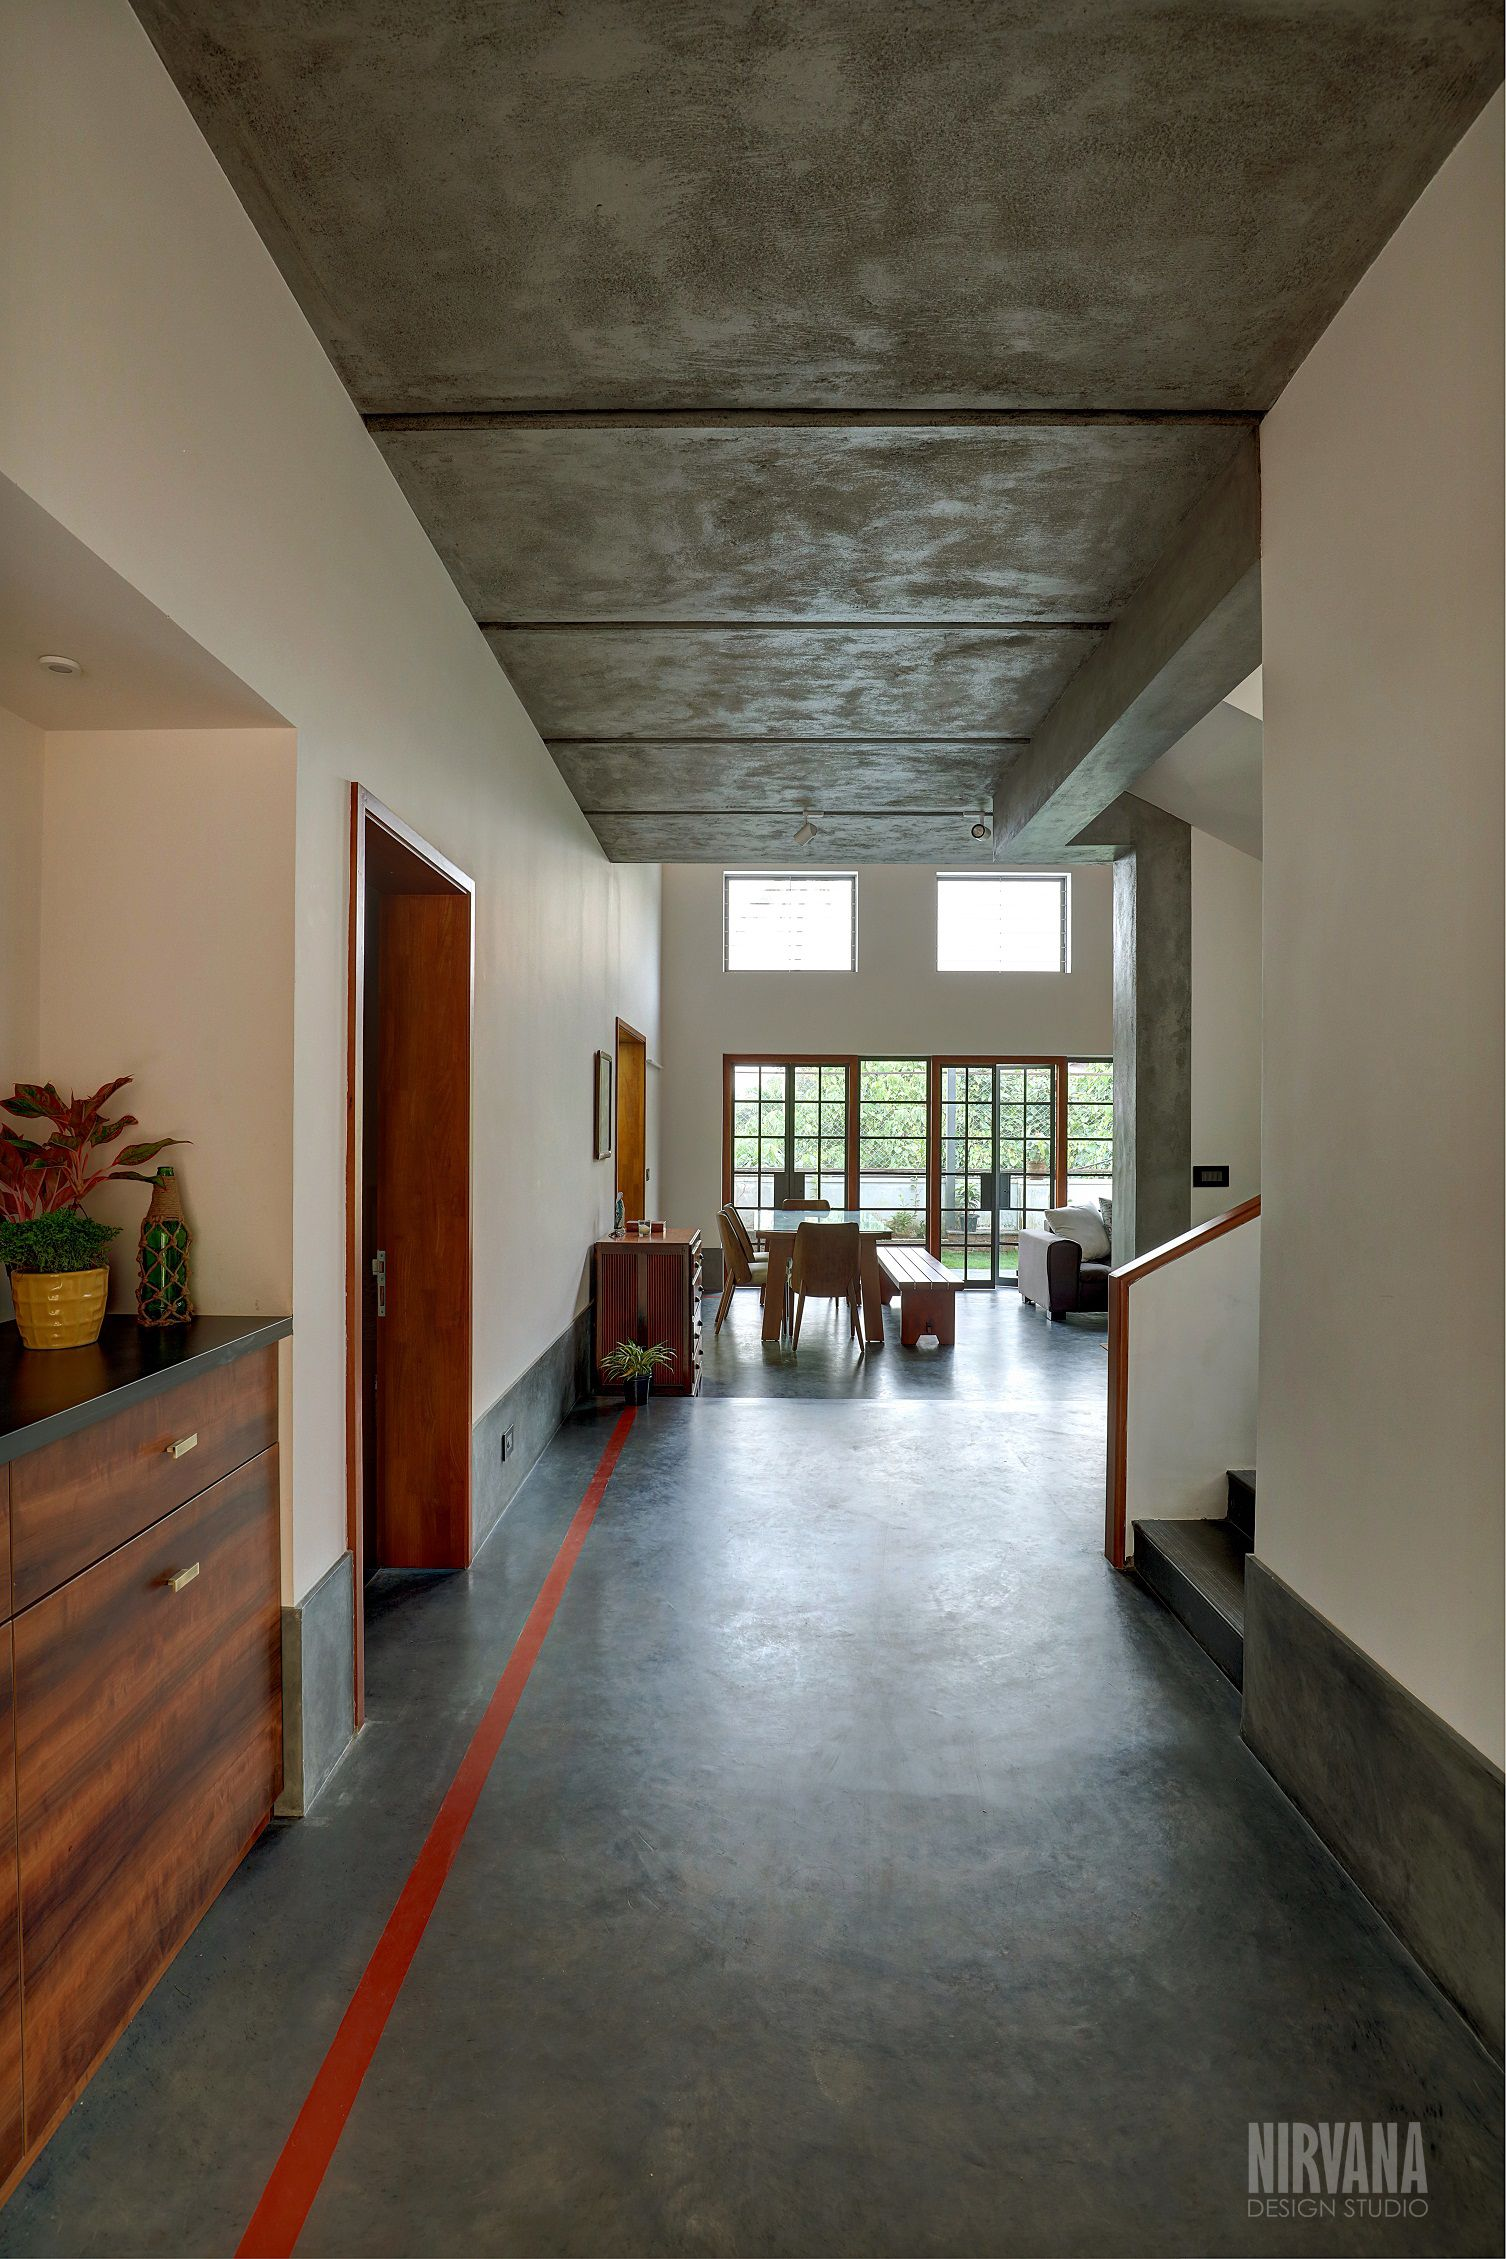 Oxide floor, Cement ceiling, concrete, zen interior